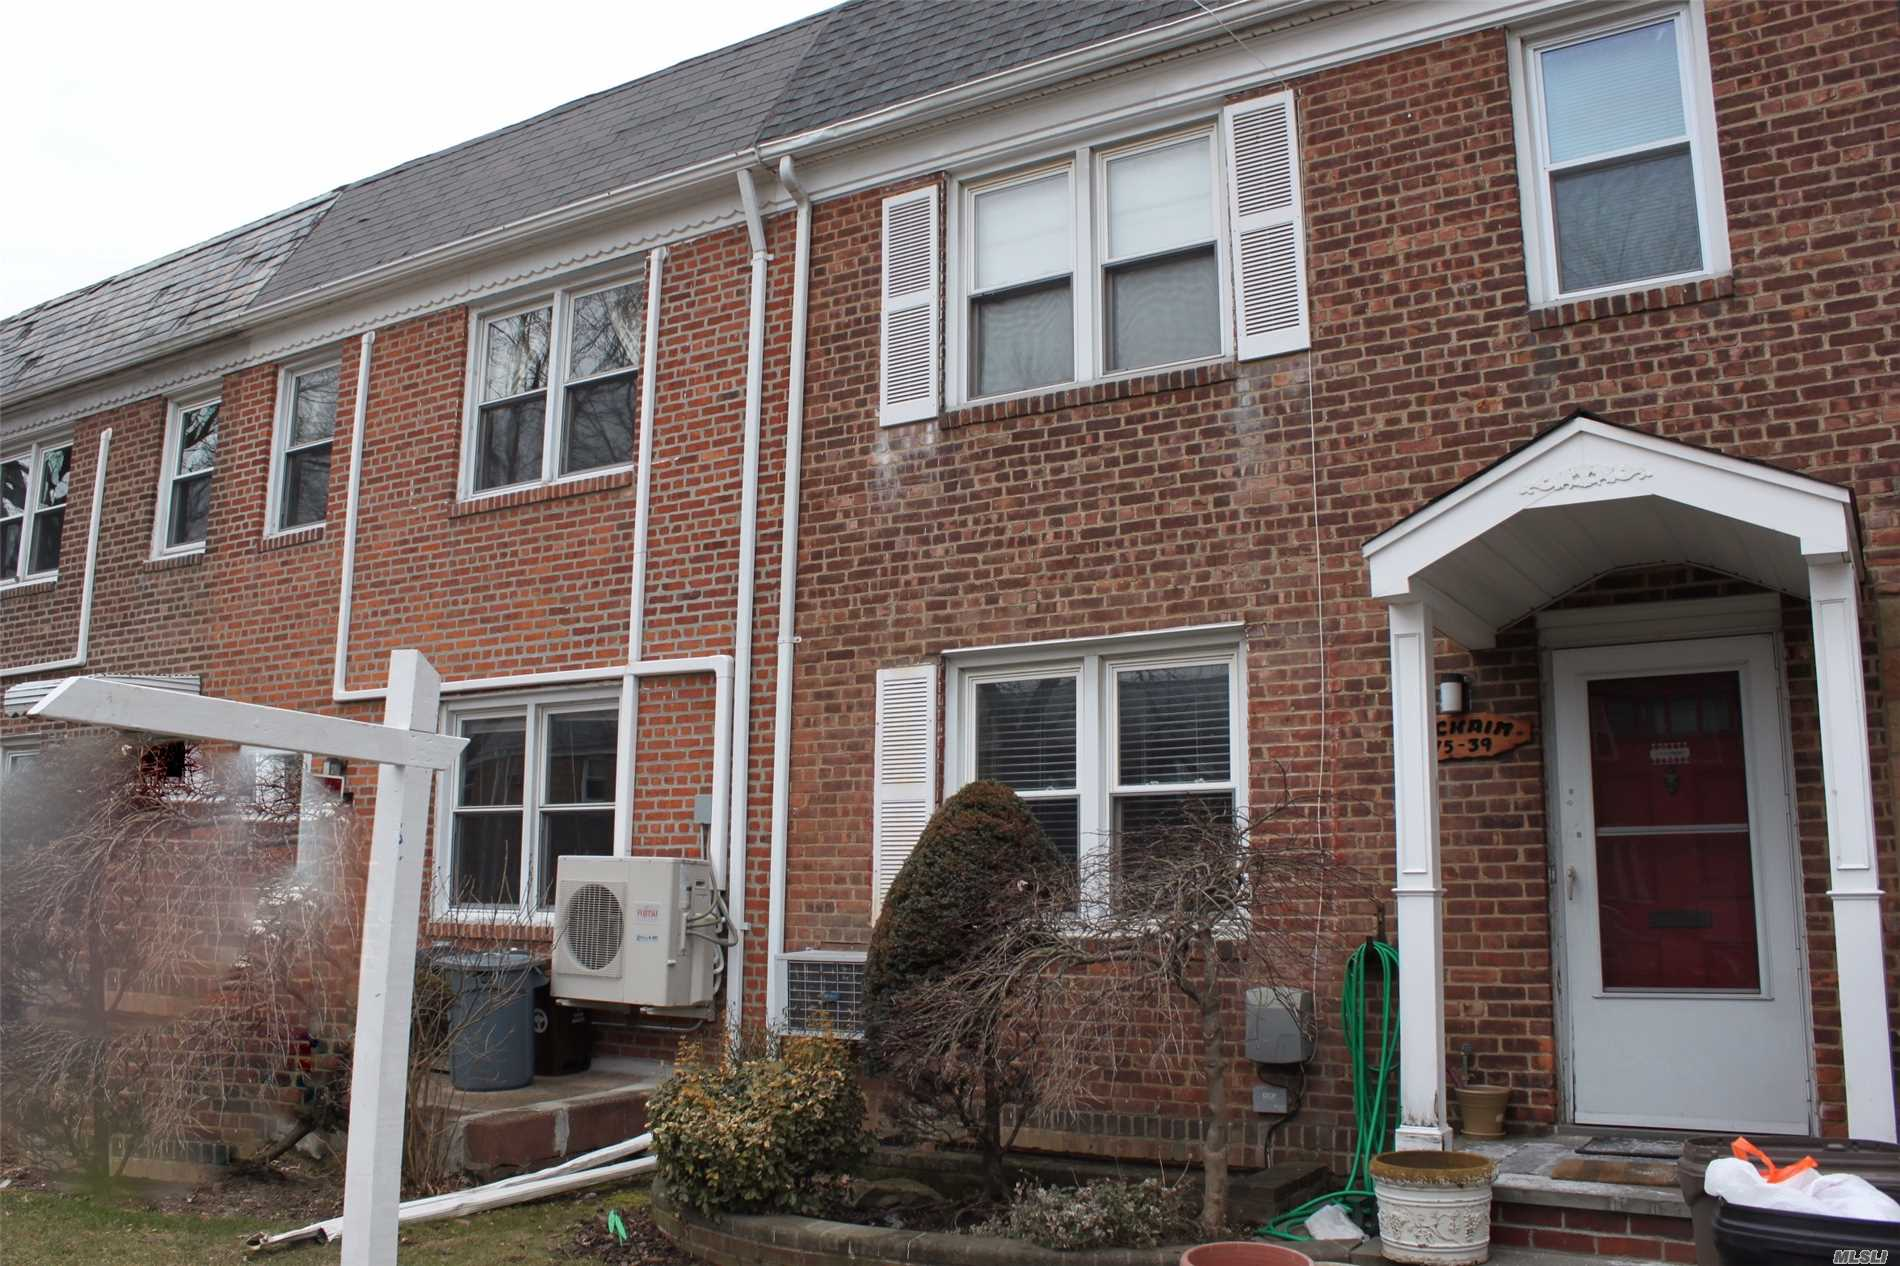 This Property Has Been Lovingly Cared For And Is In Excellent Condition. Some Features Include An Updated Kitchen And Bath, Beautiful Hardwood Floors, Nice Built-In Shelving And More. There Is A Nice Yard Space In The Rear Of The House Where One Can Enjoy The Quiet Nature Of The Neighborhood Or Even Make Space To Park A Car. Enjoy Being Conveniently Located To All Shopping And Transportation. This Home Is Zoned For The Highly Rated P.S. 173 In School District 26.